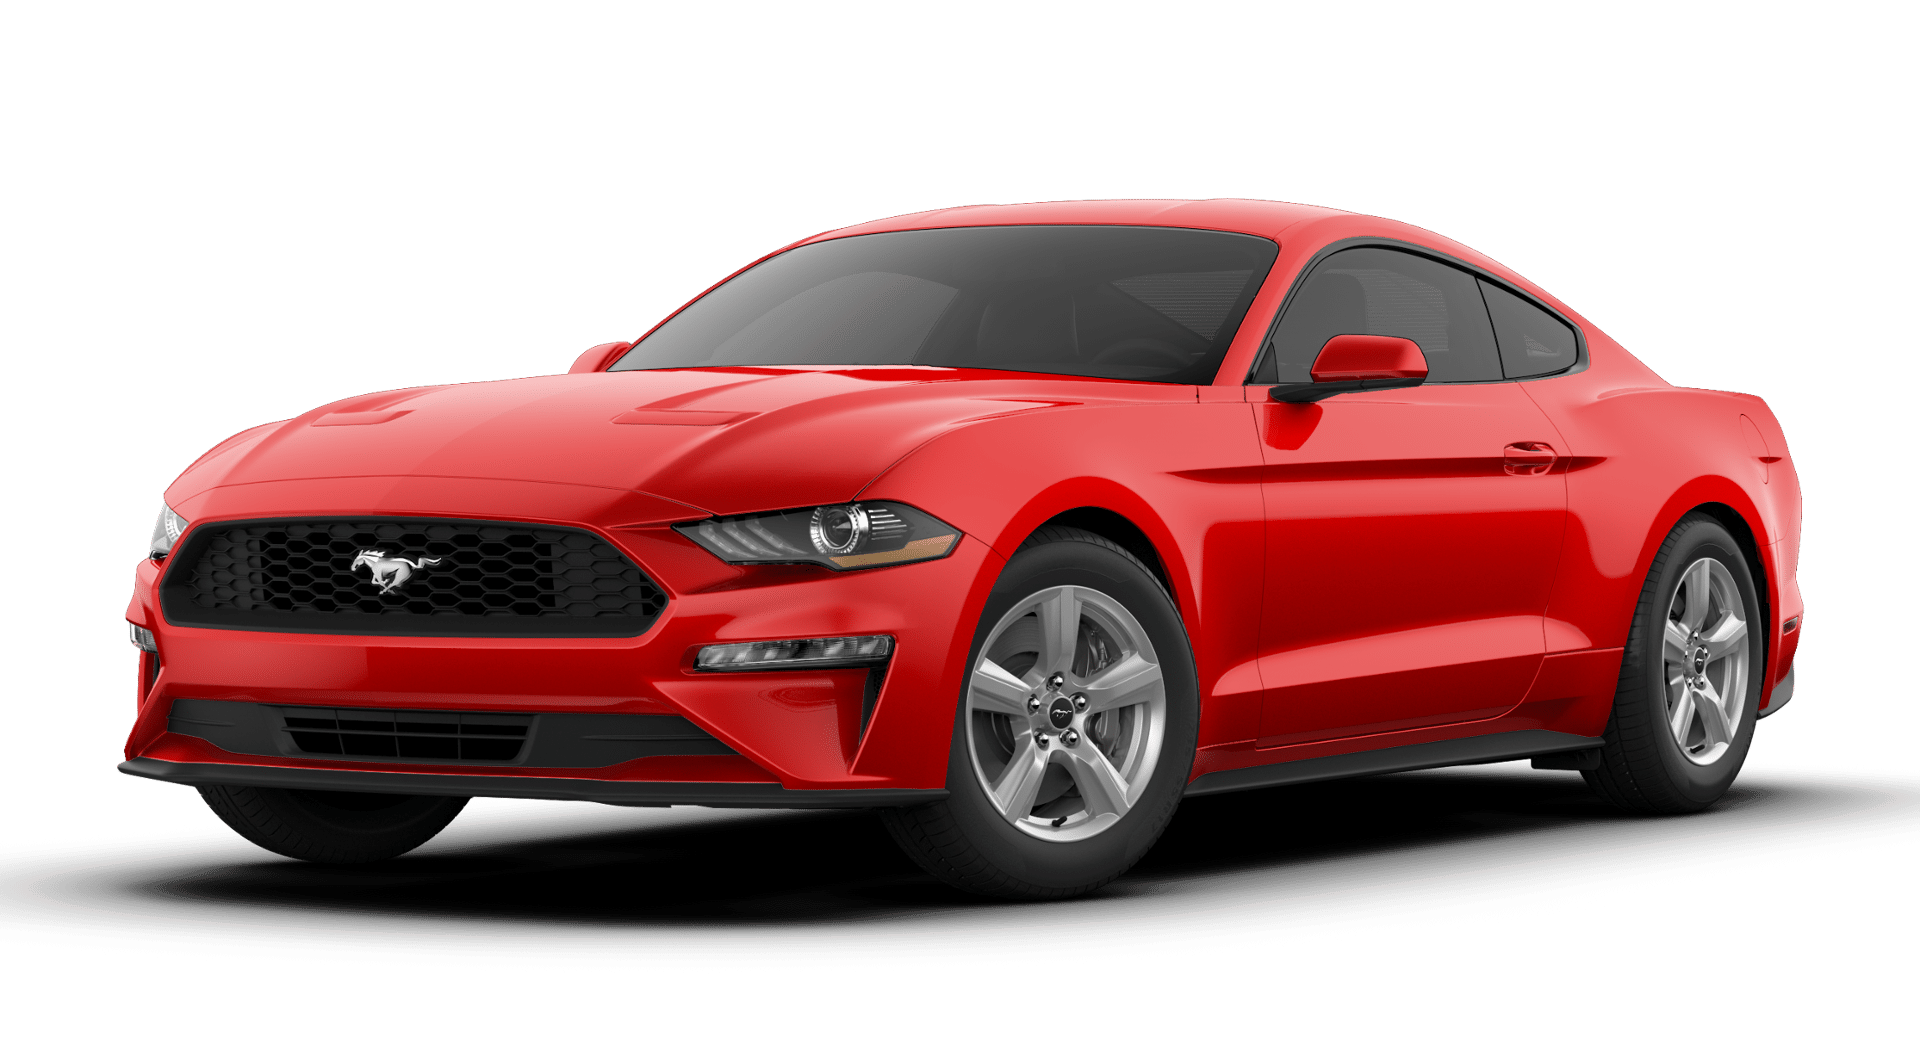 2019 ford mustang models